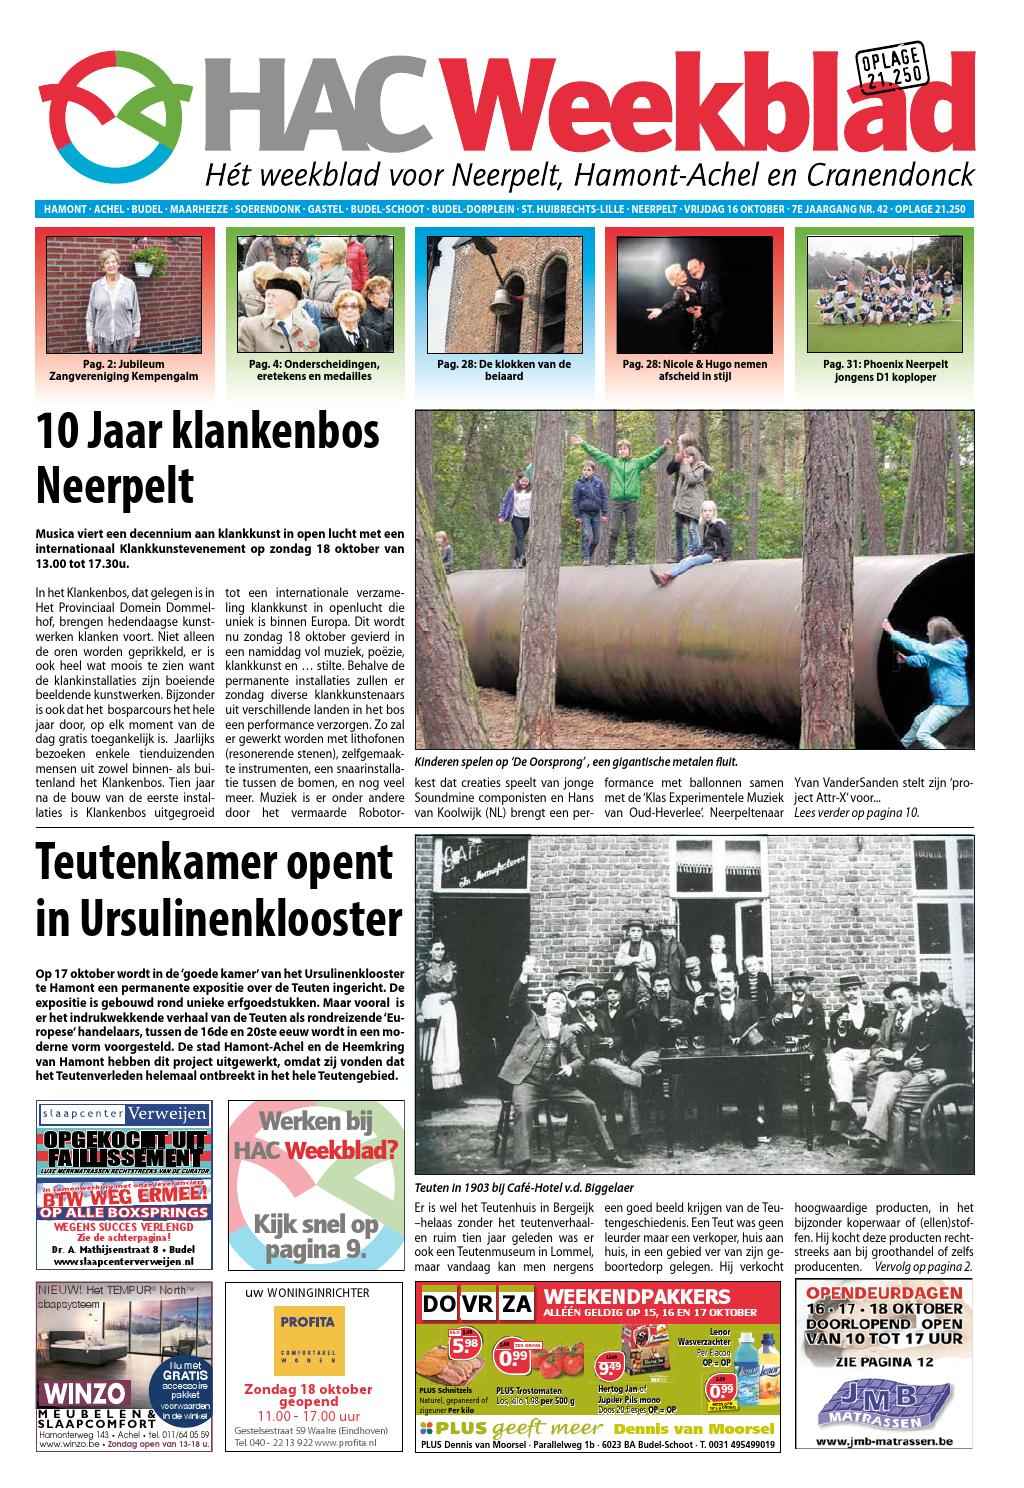 An Swartenbroekx Naakt hac neerpelt week 42 2015hac weekblad - issuu